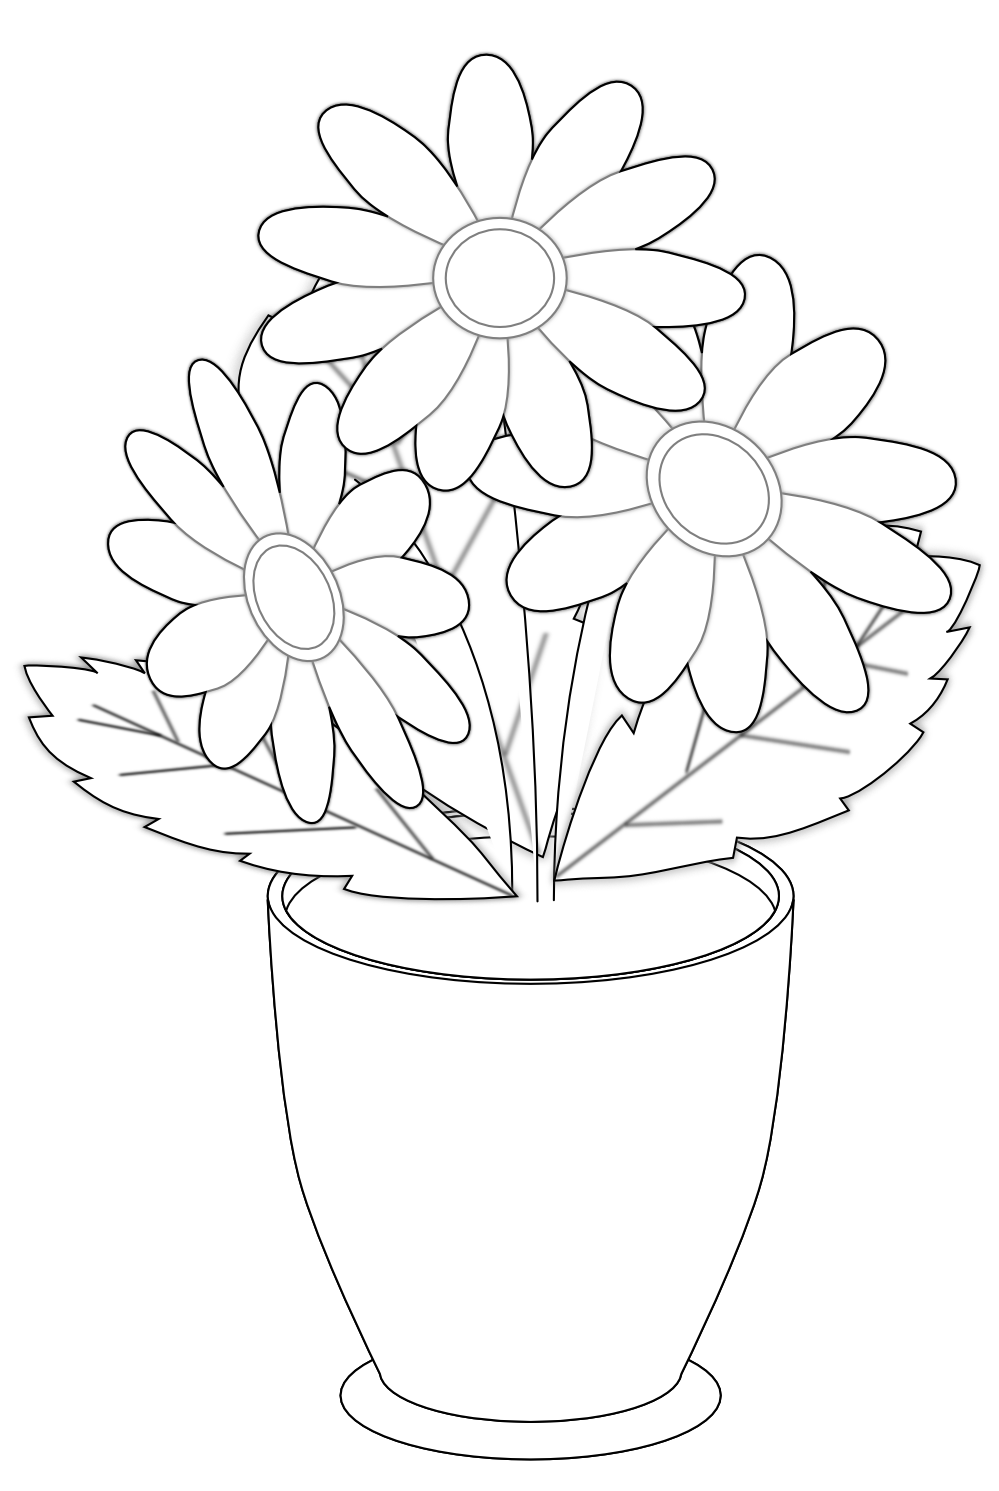 Images of black and white flowers cliparts flowers for black and white flower clipart daisy izmirmasajfo